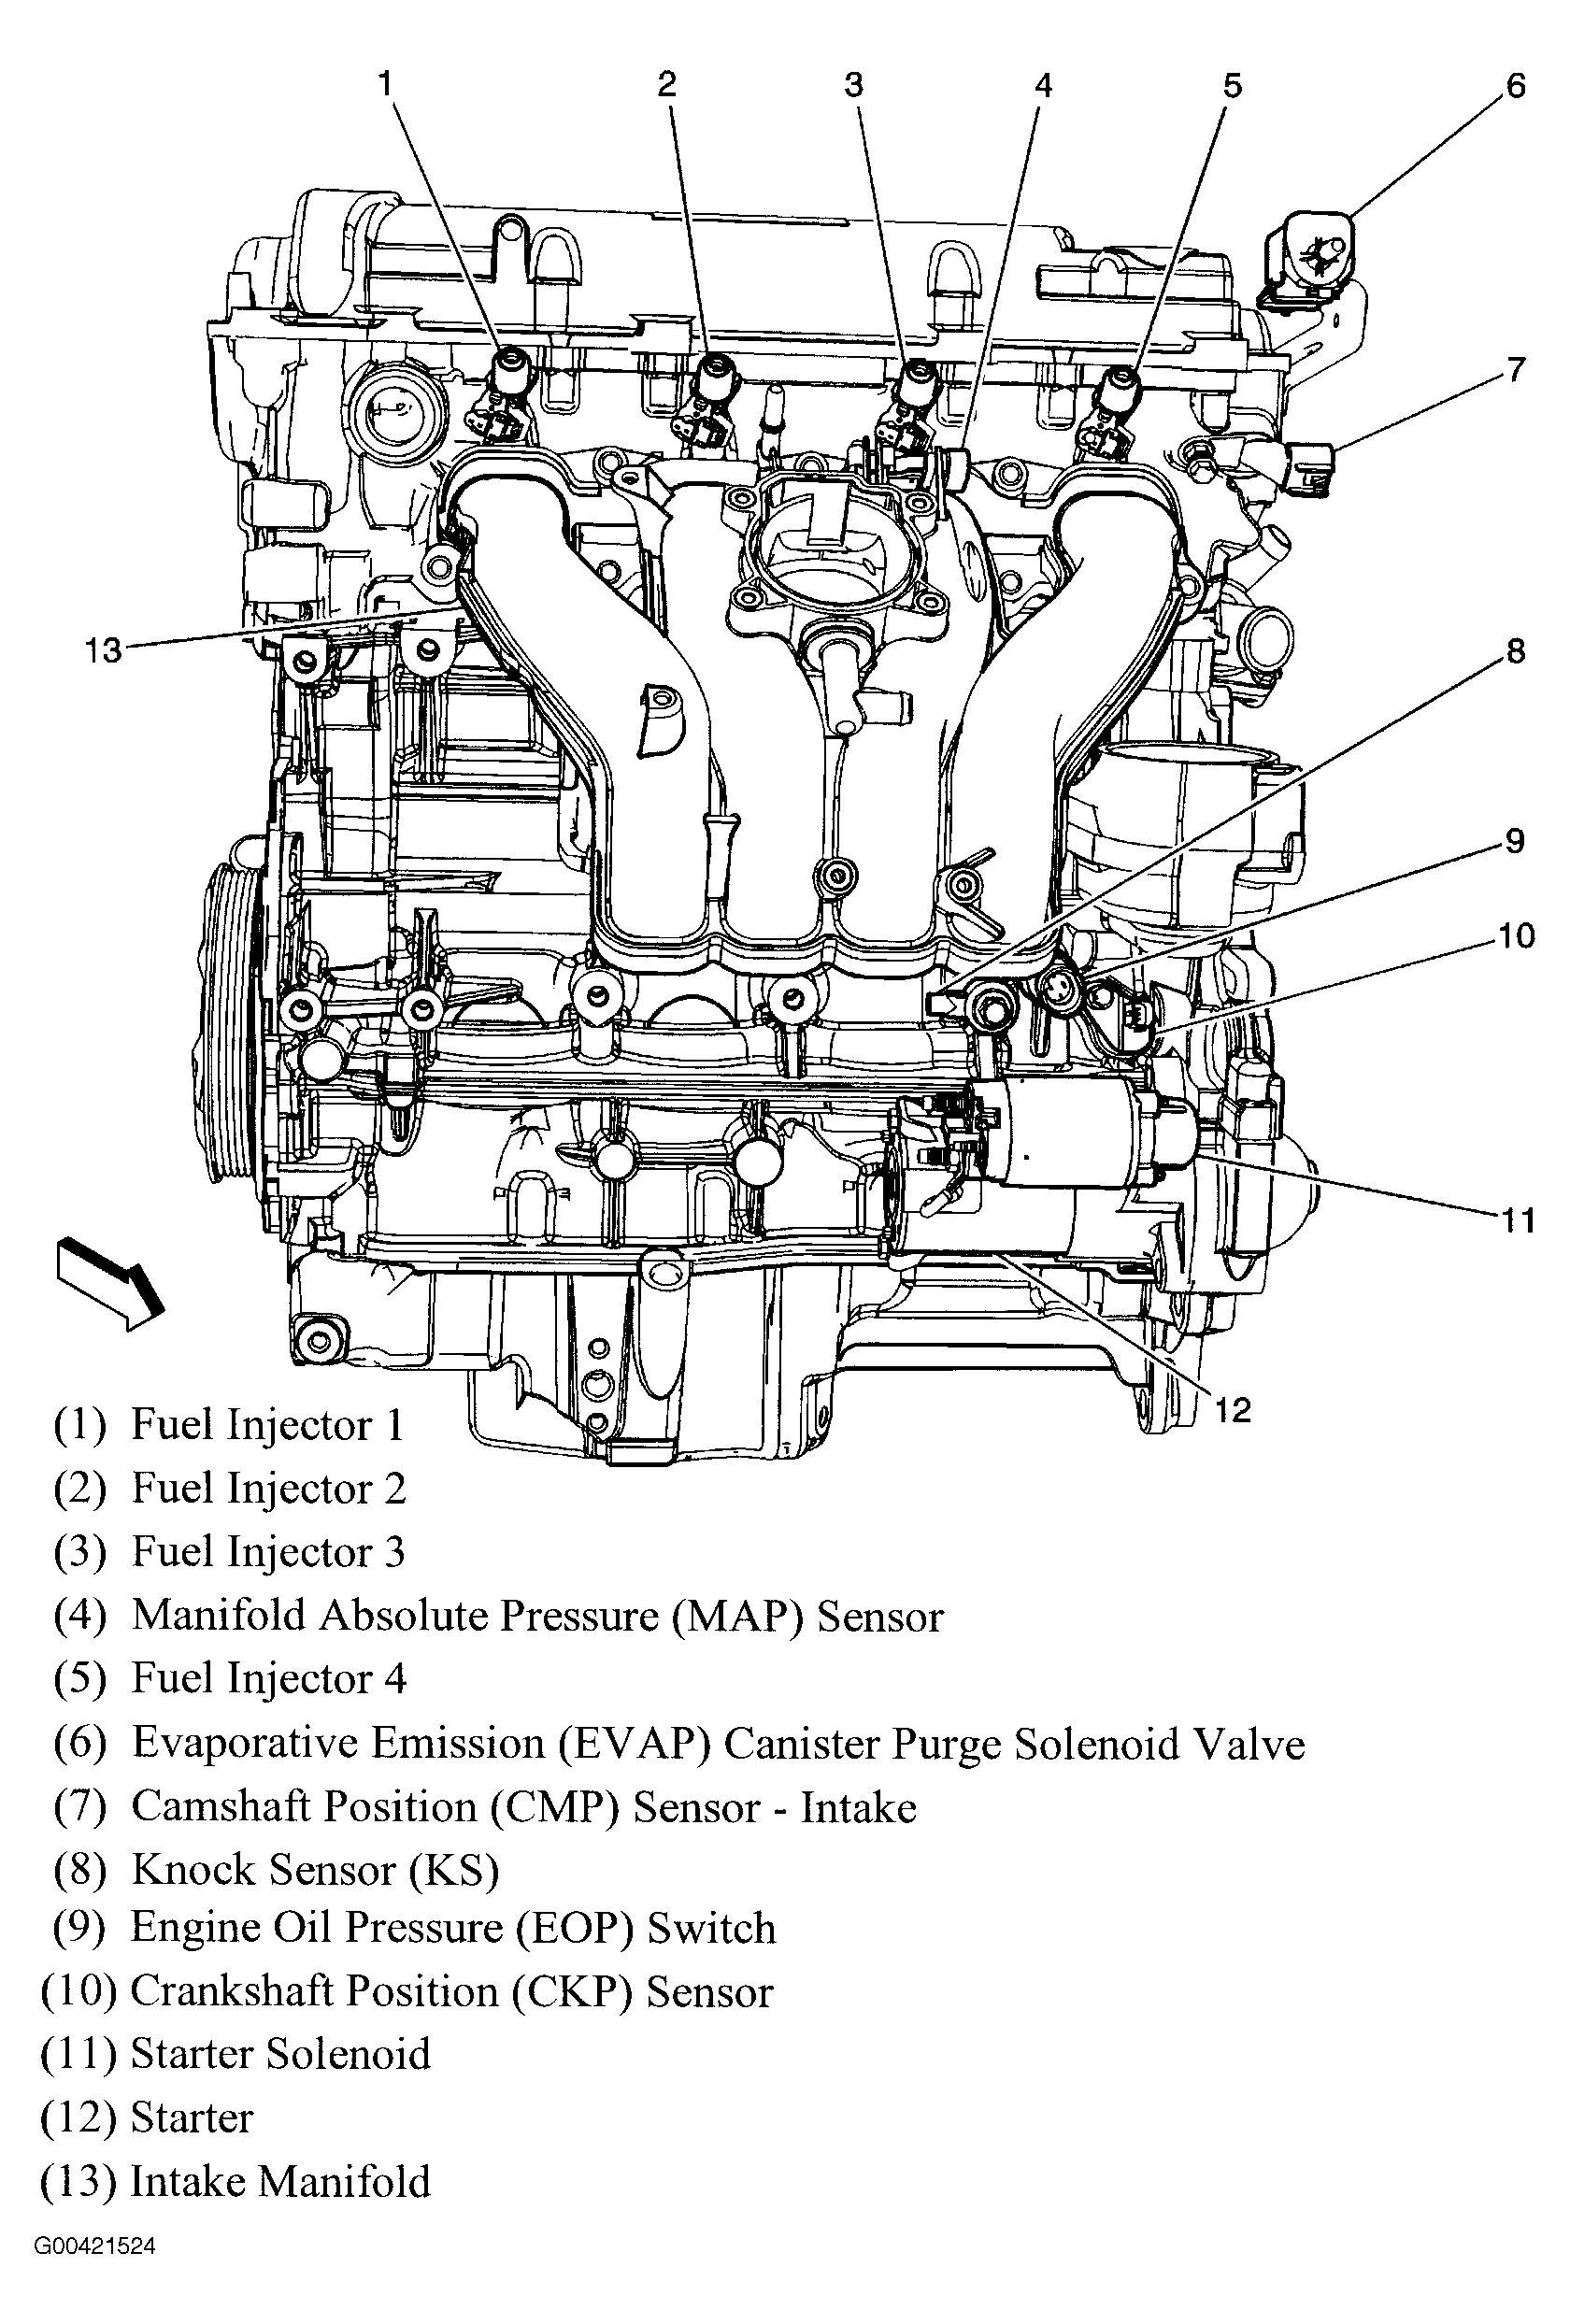 2003 Chevy Impala Engine Diagram Chevrolet Engine Diagrams Wiring Diagram Options Of 2003 Chevy Impala Engine Diagram Chevrolet Engine Diagrams Wiring Diagram Options